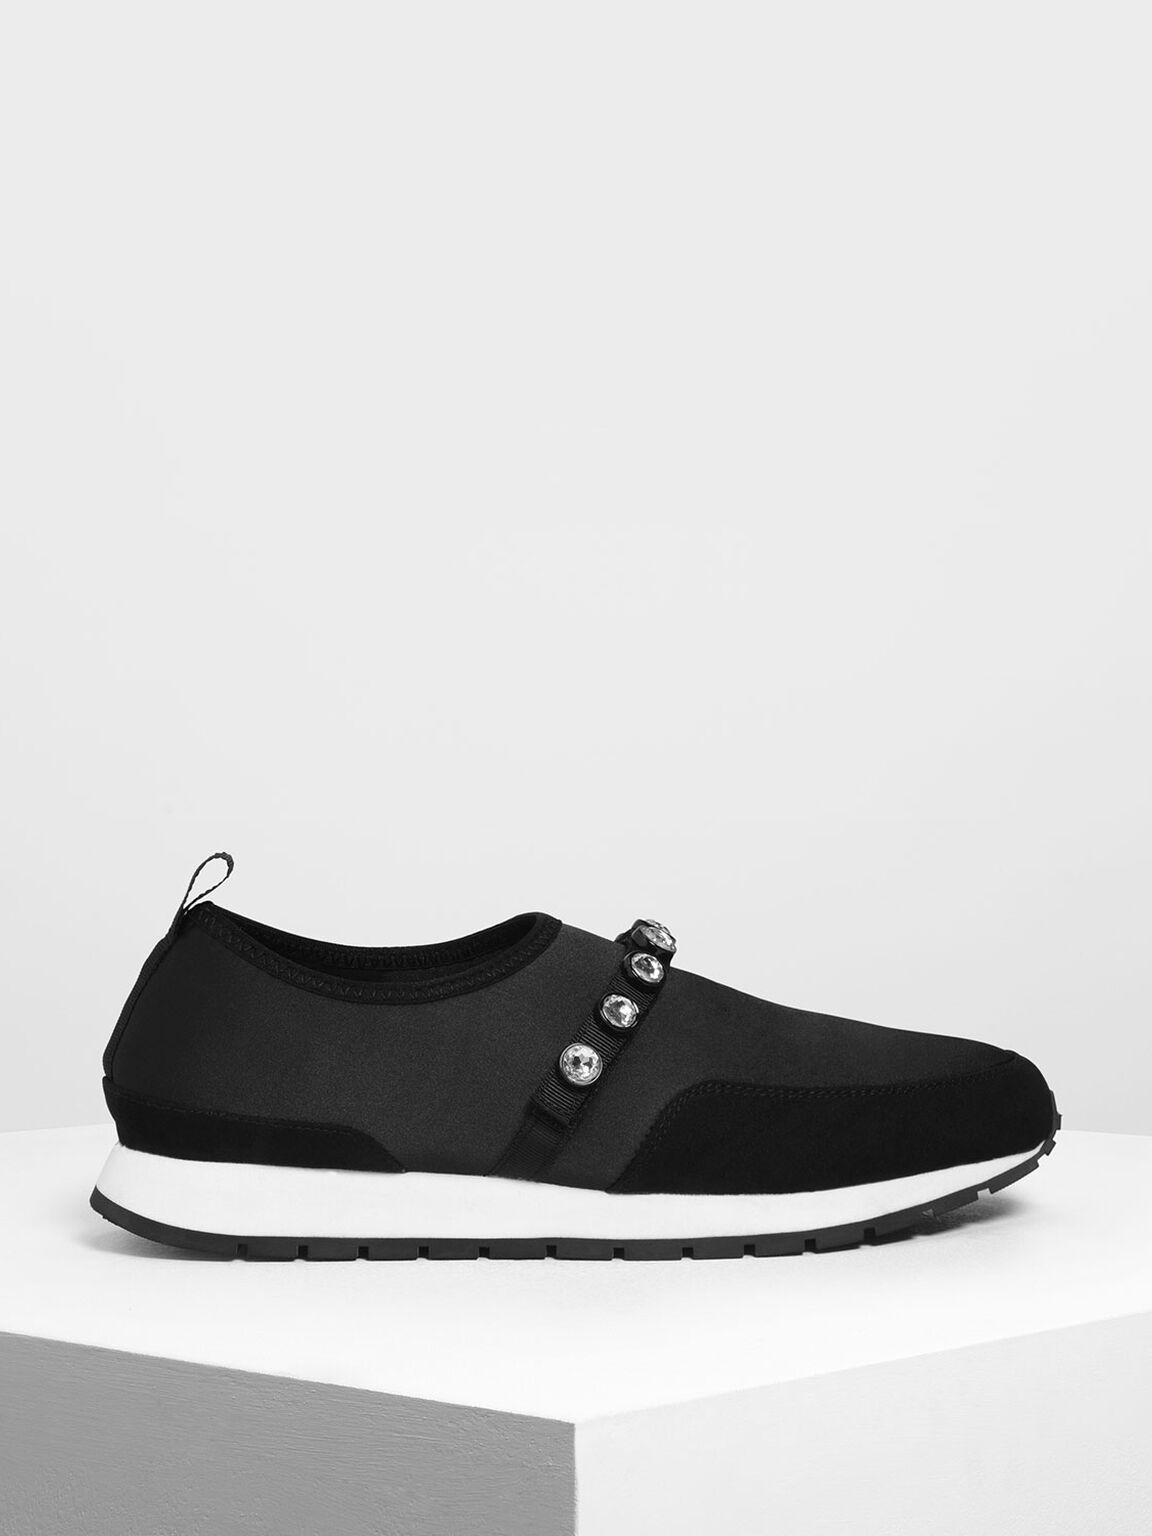 Embellished Slip-On Sneakers, Black, hi-res